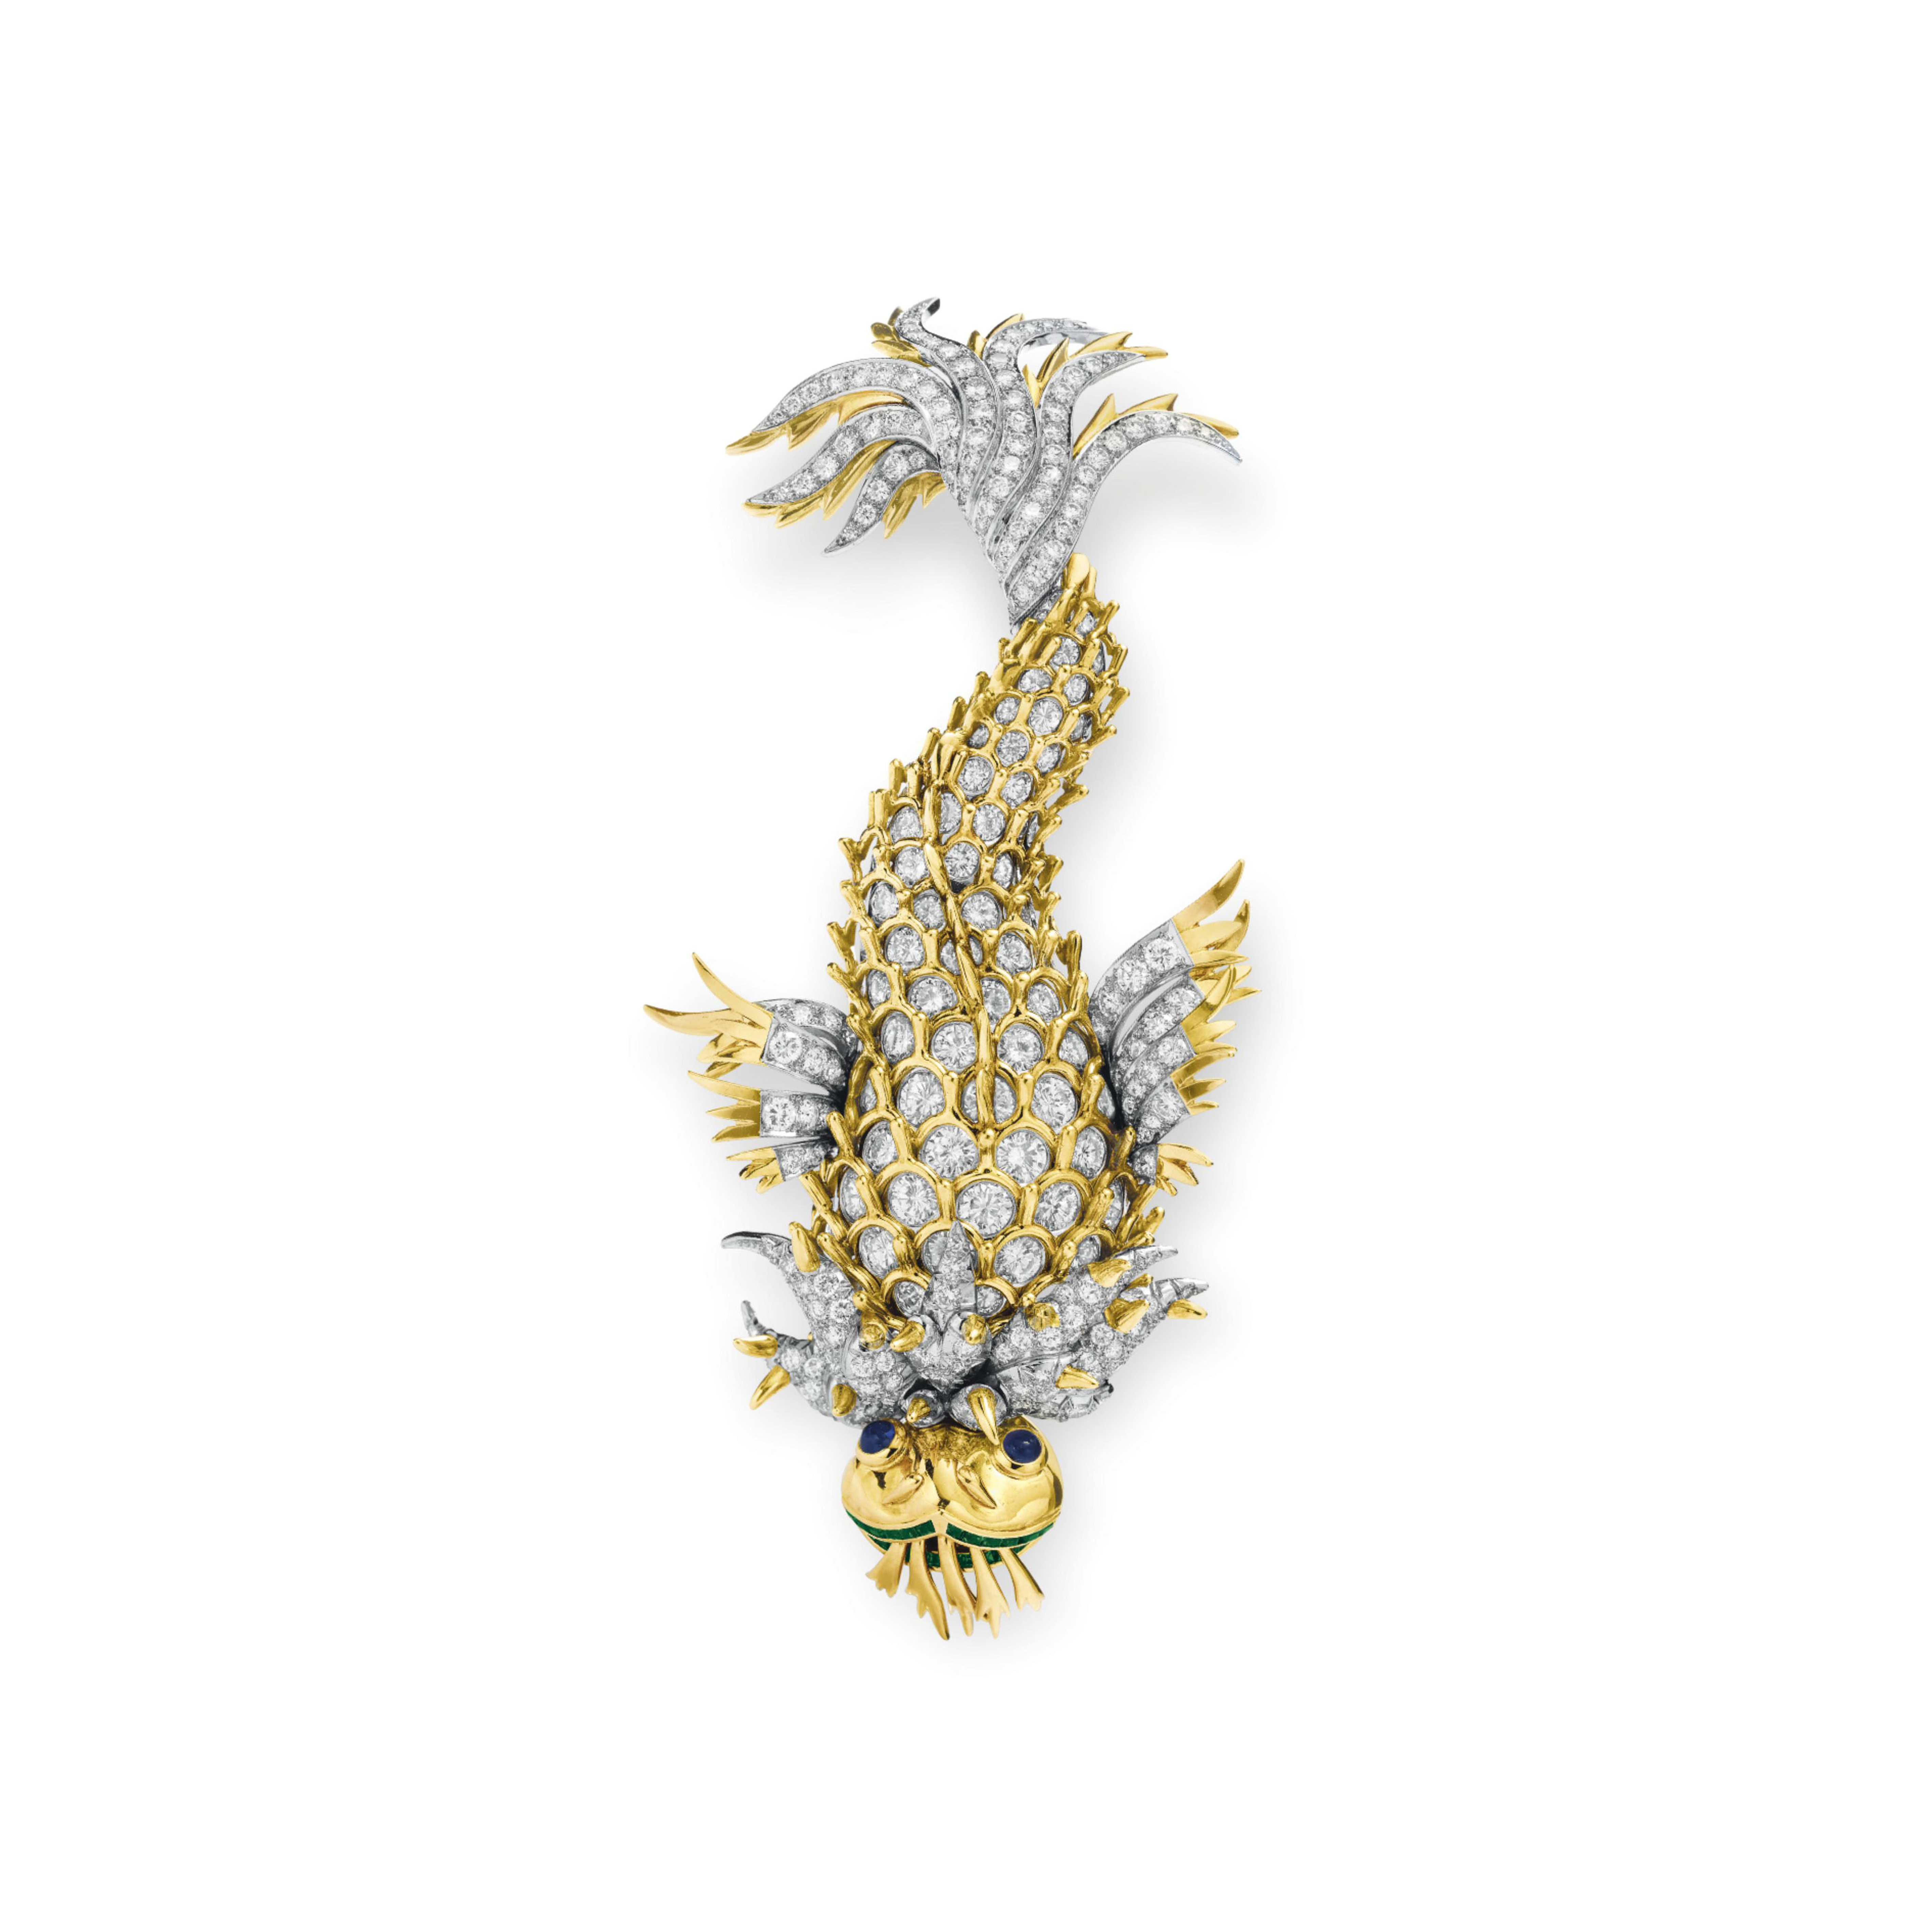 """THE NIGHT OF THE IGUANA BROOCH A DIAMOND, SAPPHIRE AND EMERALD """"DOLPHIN"""" BROOCH, BY JEAN SCHLUMBERGER, TIFFANY & CO."""